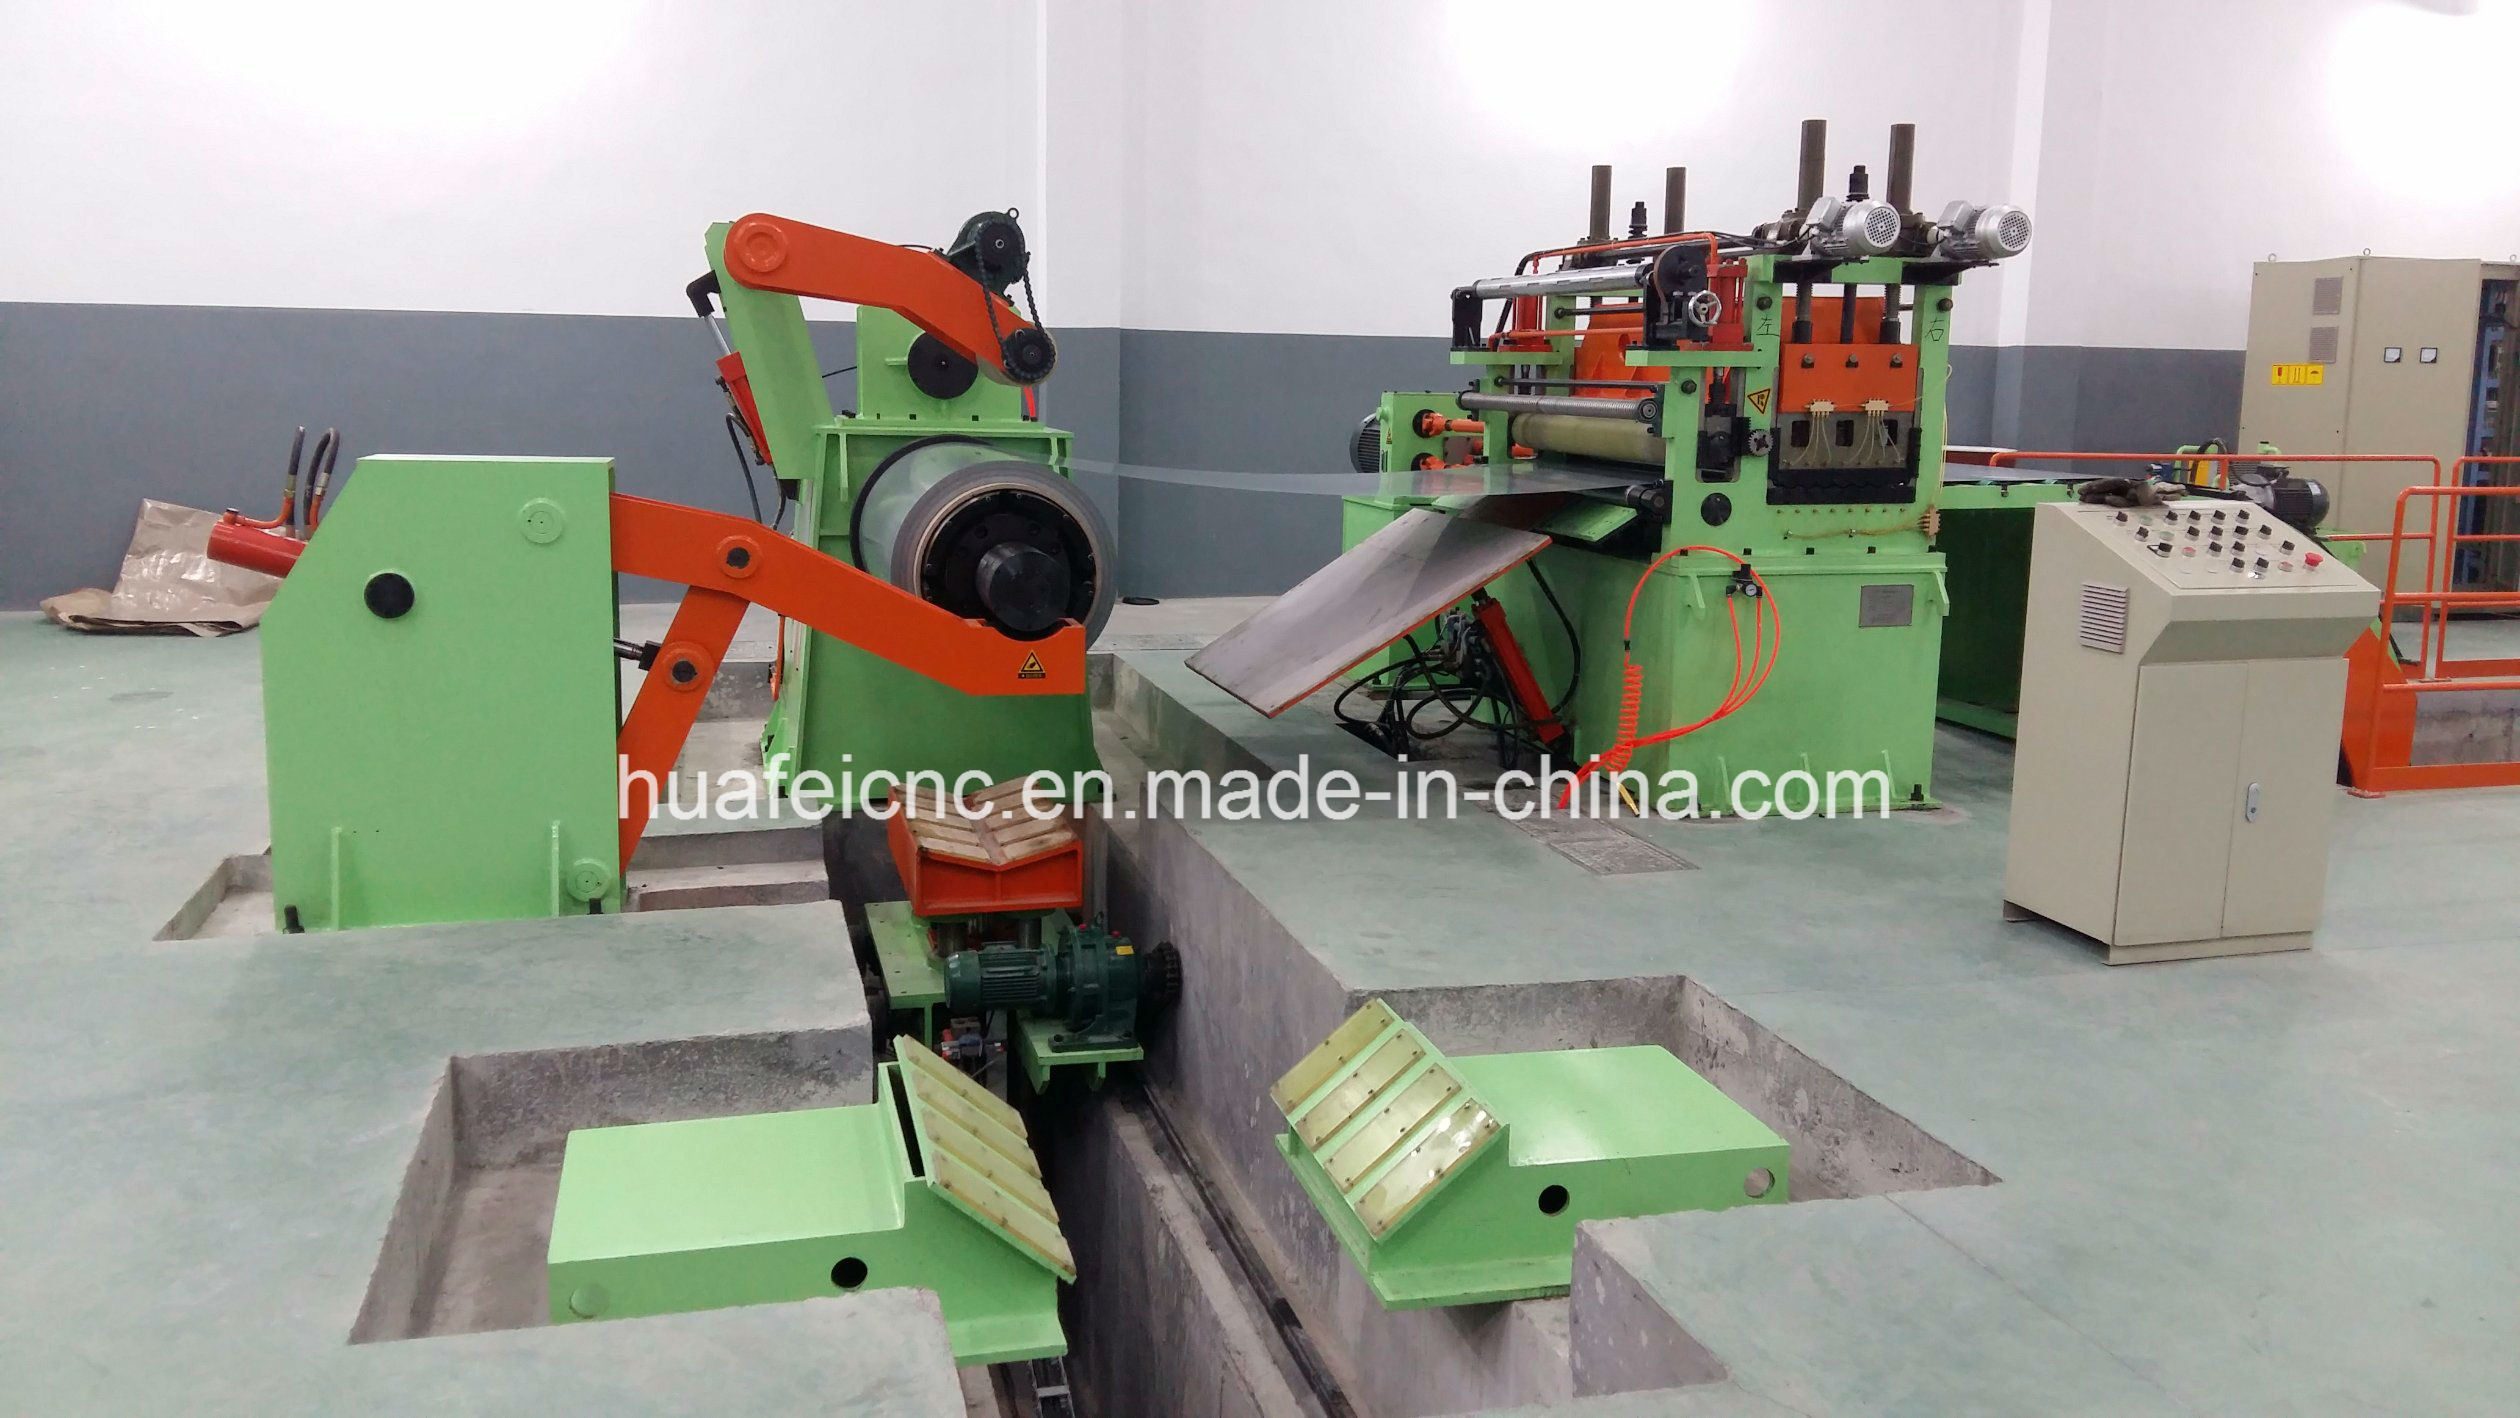 Jinan Huafei Cut to Length Production Line